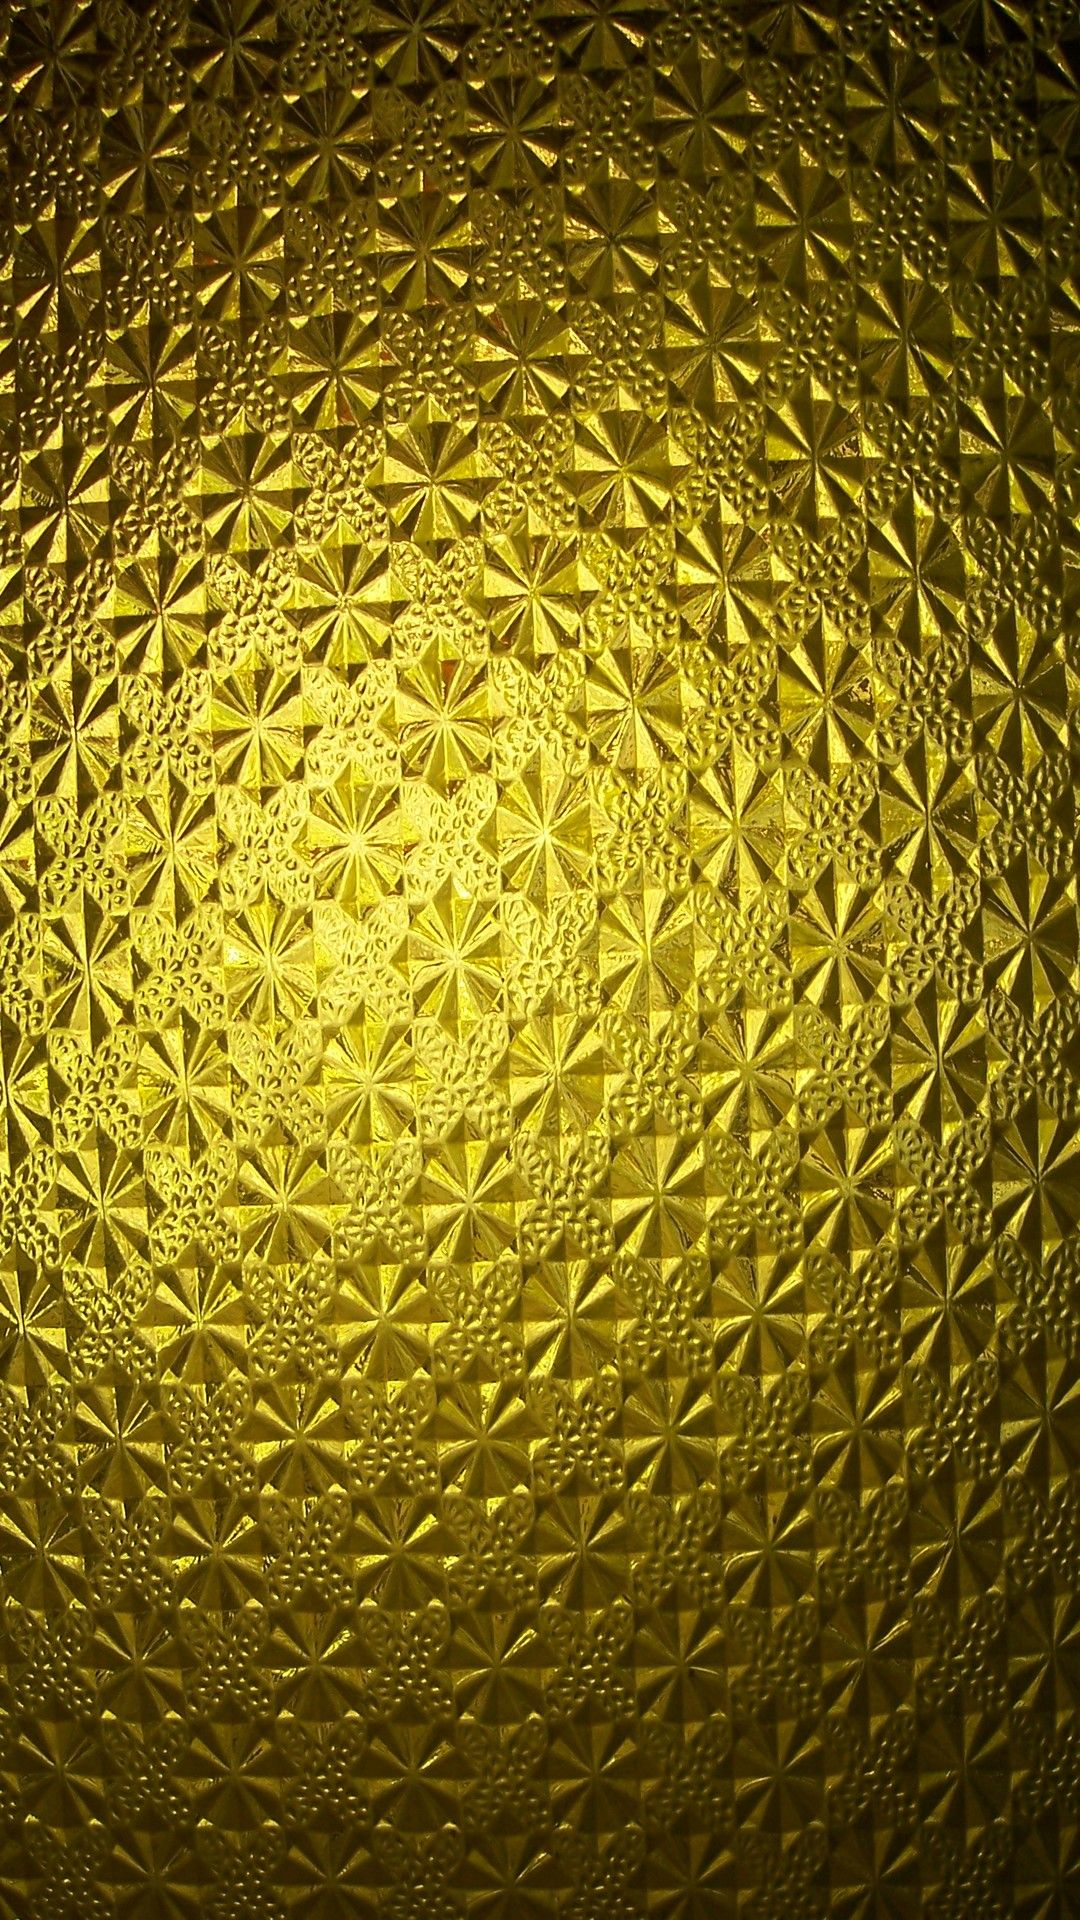 Gold hd wallpapers for android 2019 patterns textures - Gold wallpaper for android ...